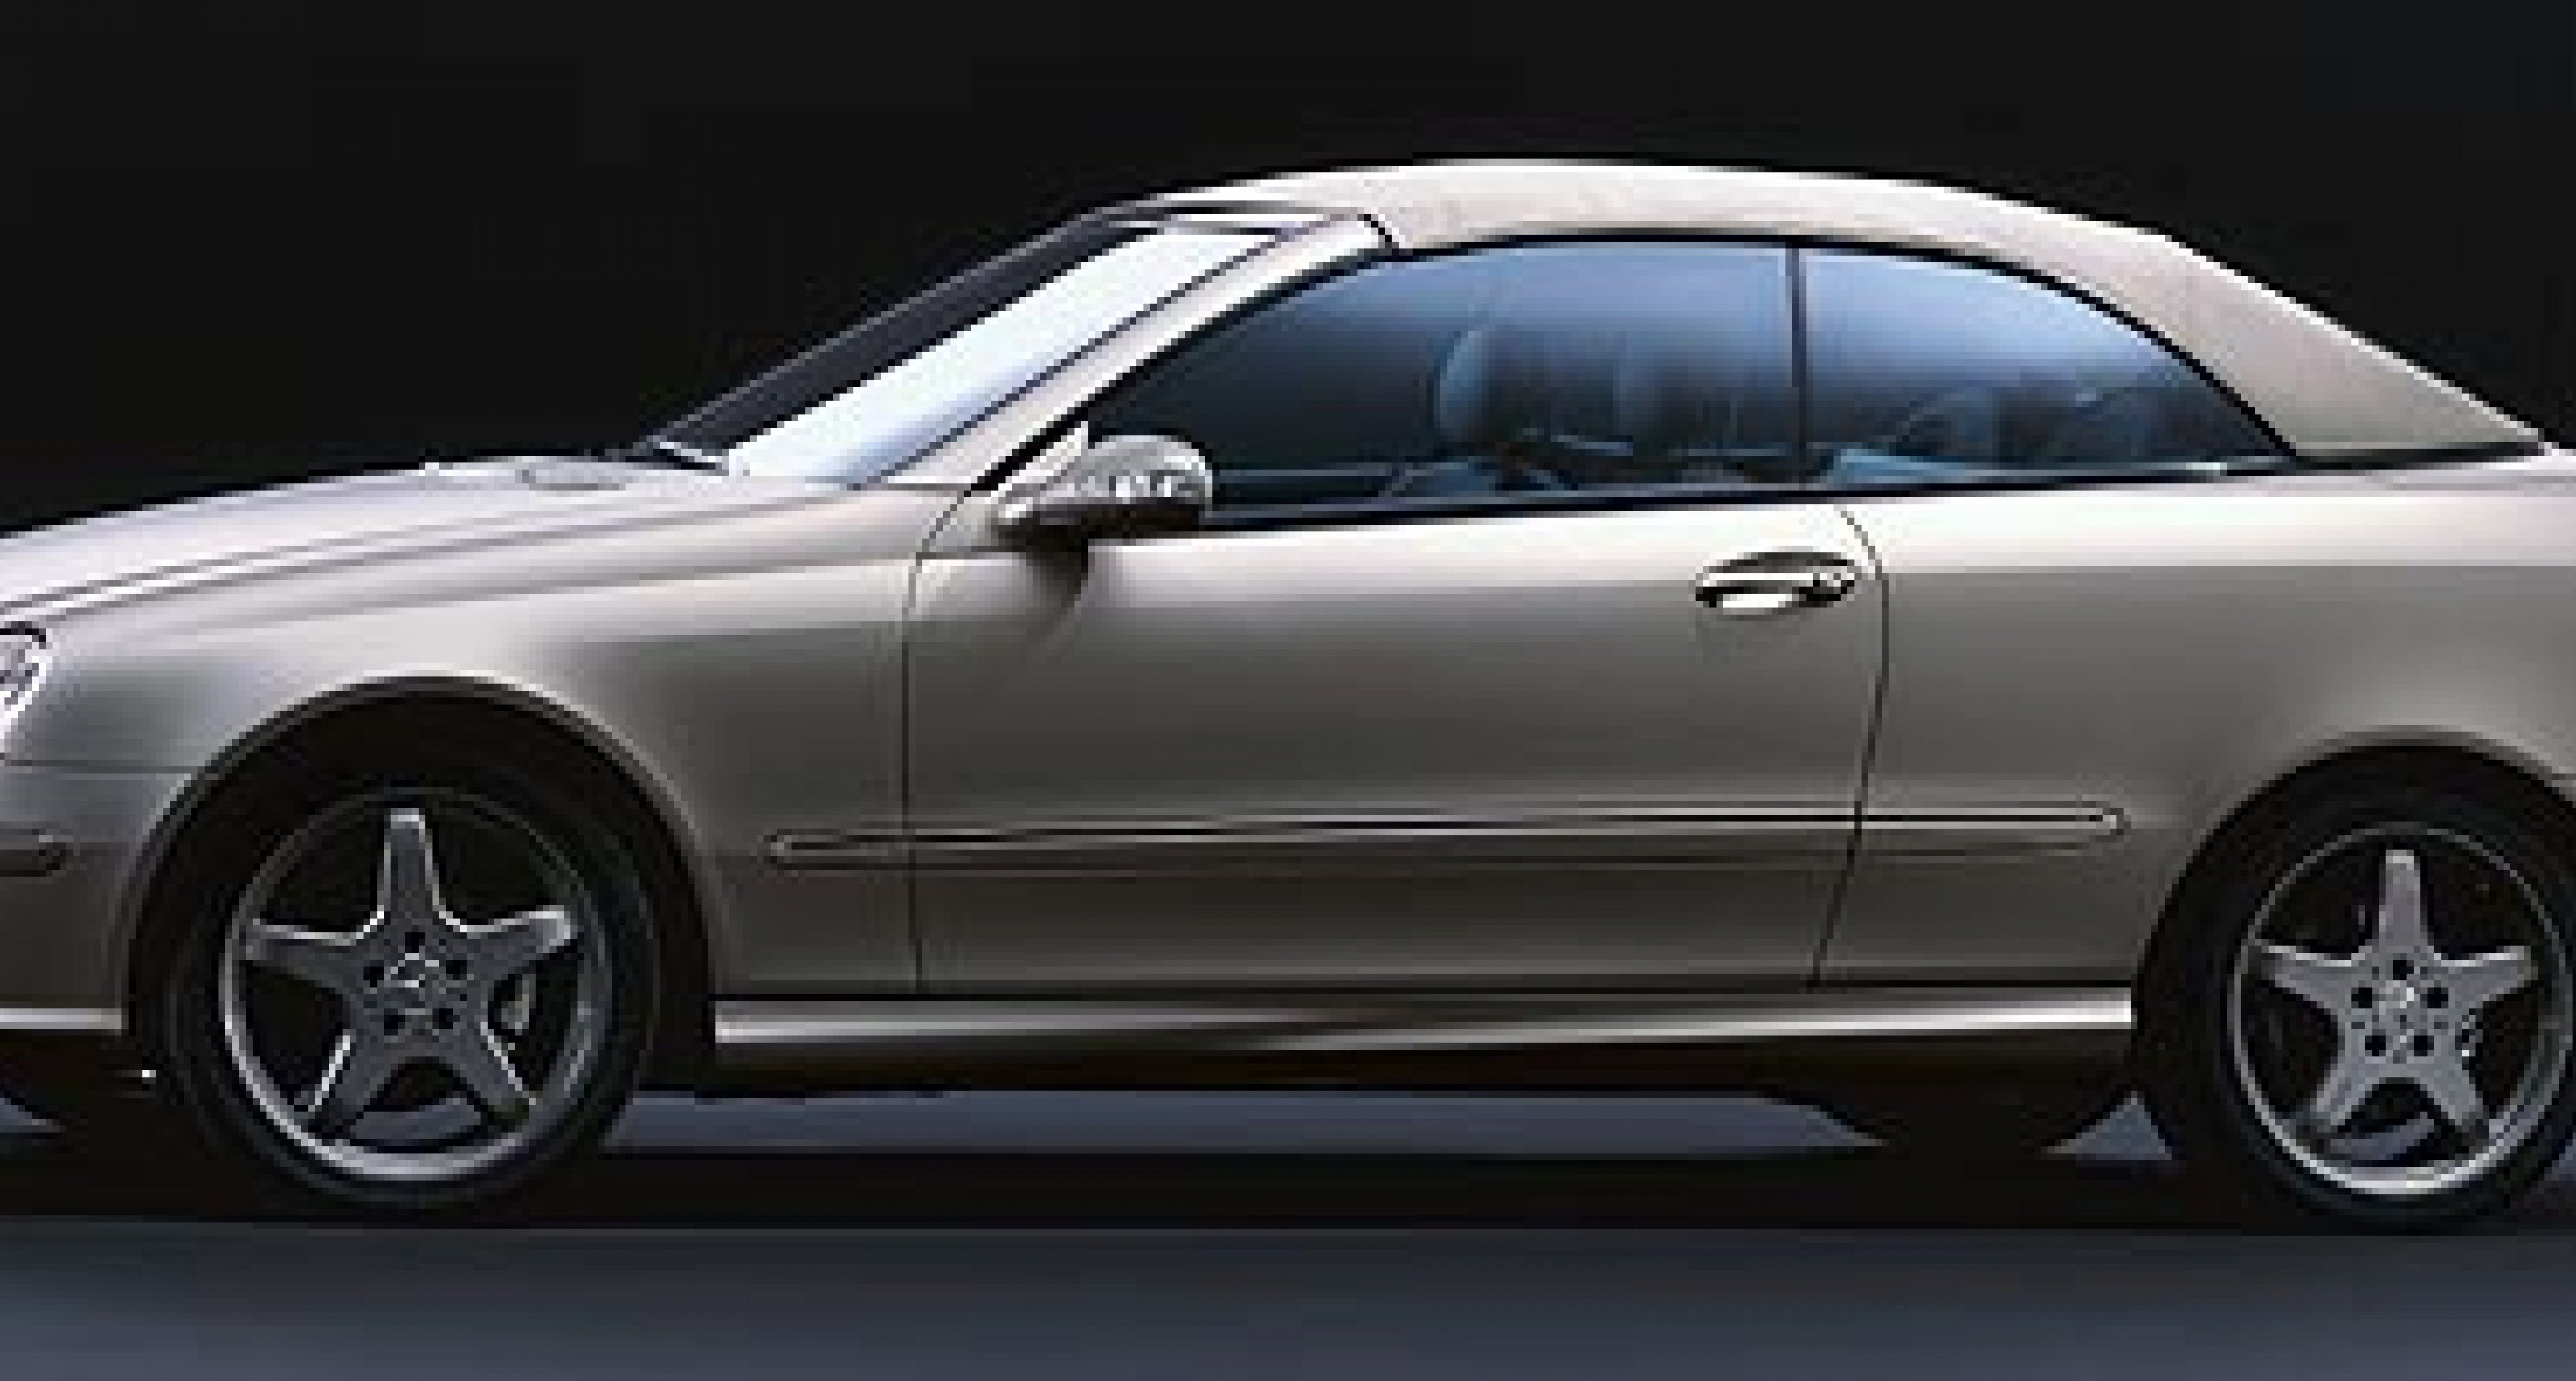 Mercedes-Benz CLK Giorgio Armani Design Car